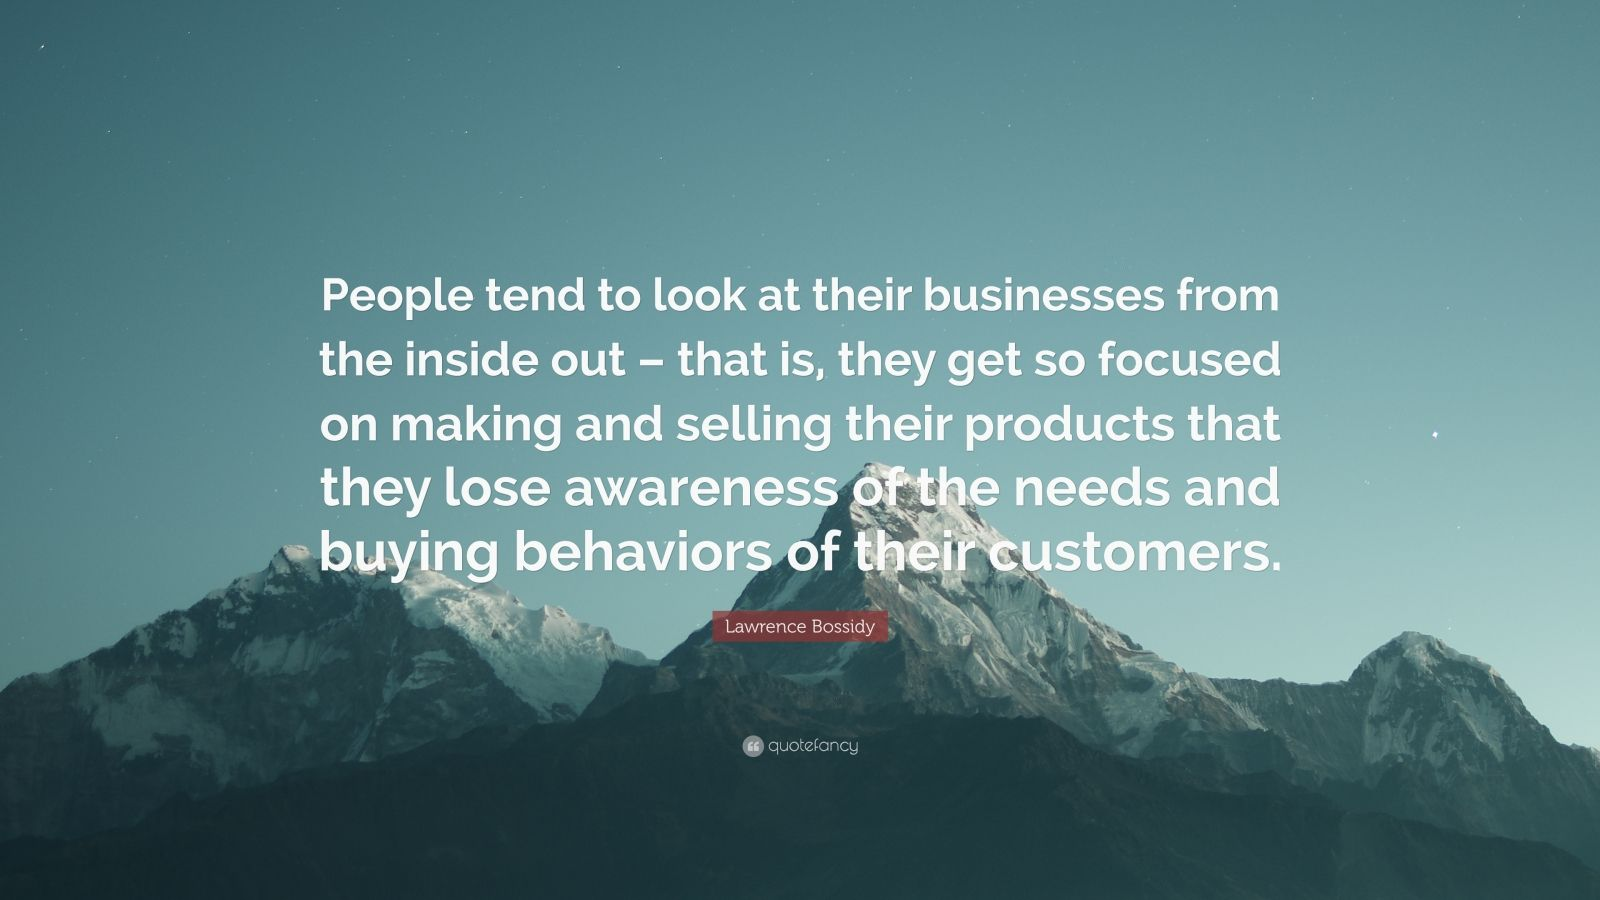 """Lawrence Bossidy Quote: """"People tend to look at their businesses from the inside out – that is, they get so focused on making and selling their products that they lose awareness of the needs and buying behaviors of their customers."""""""